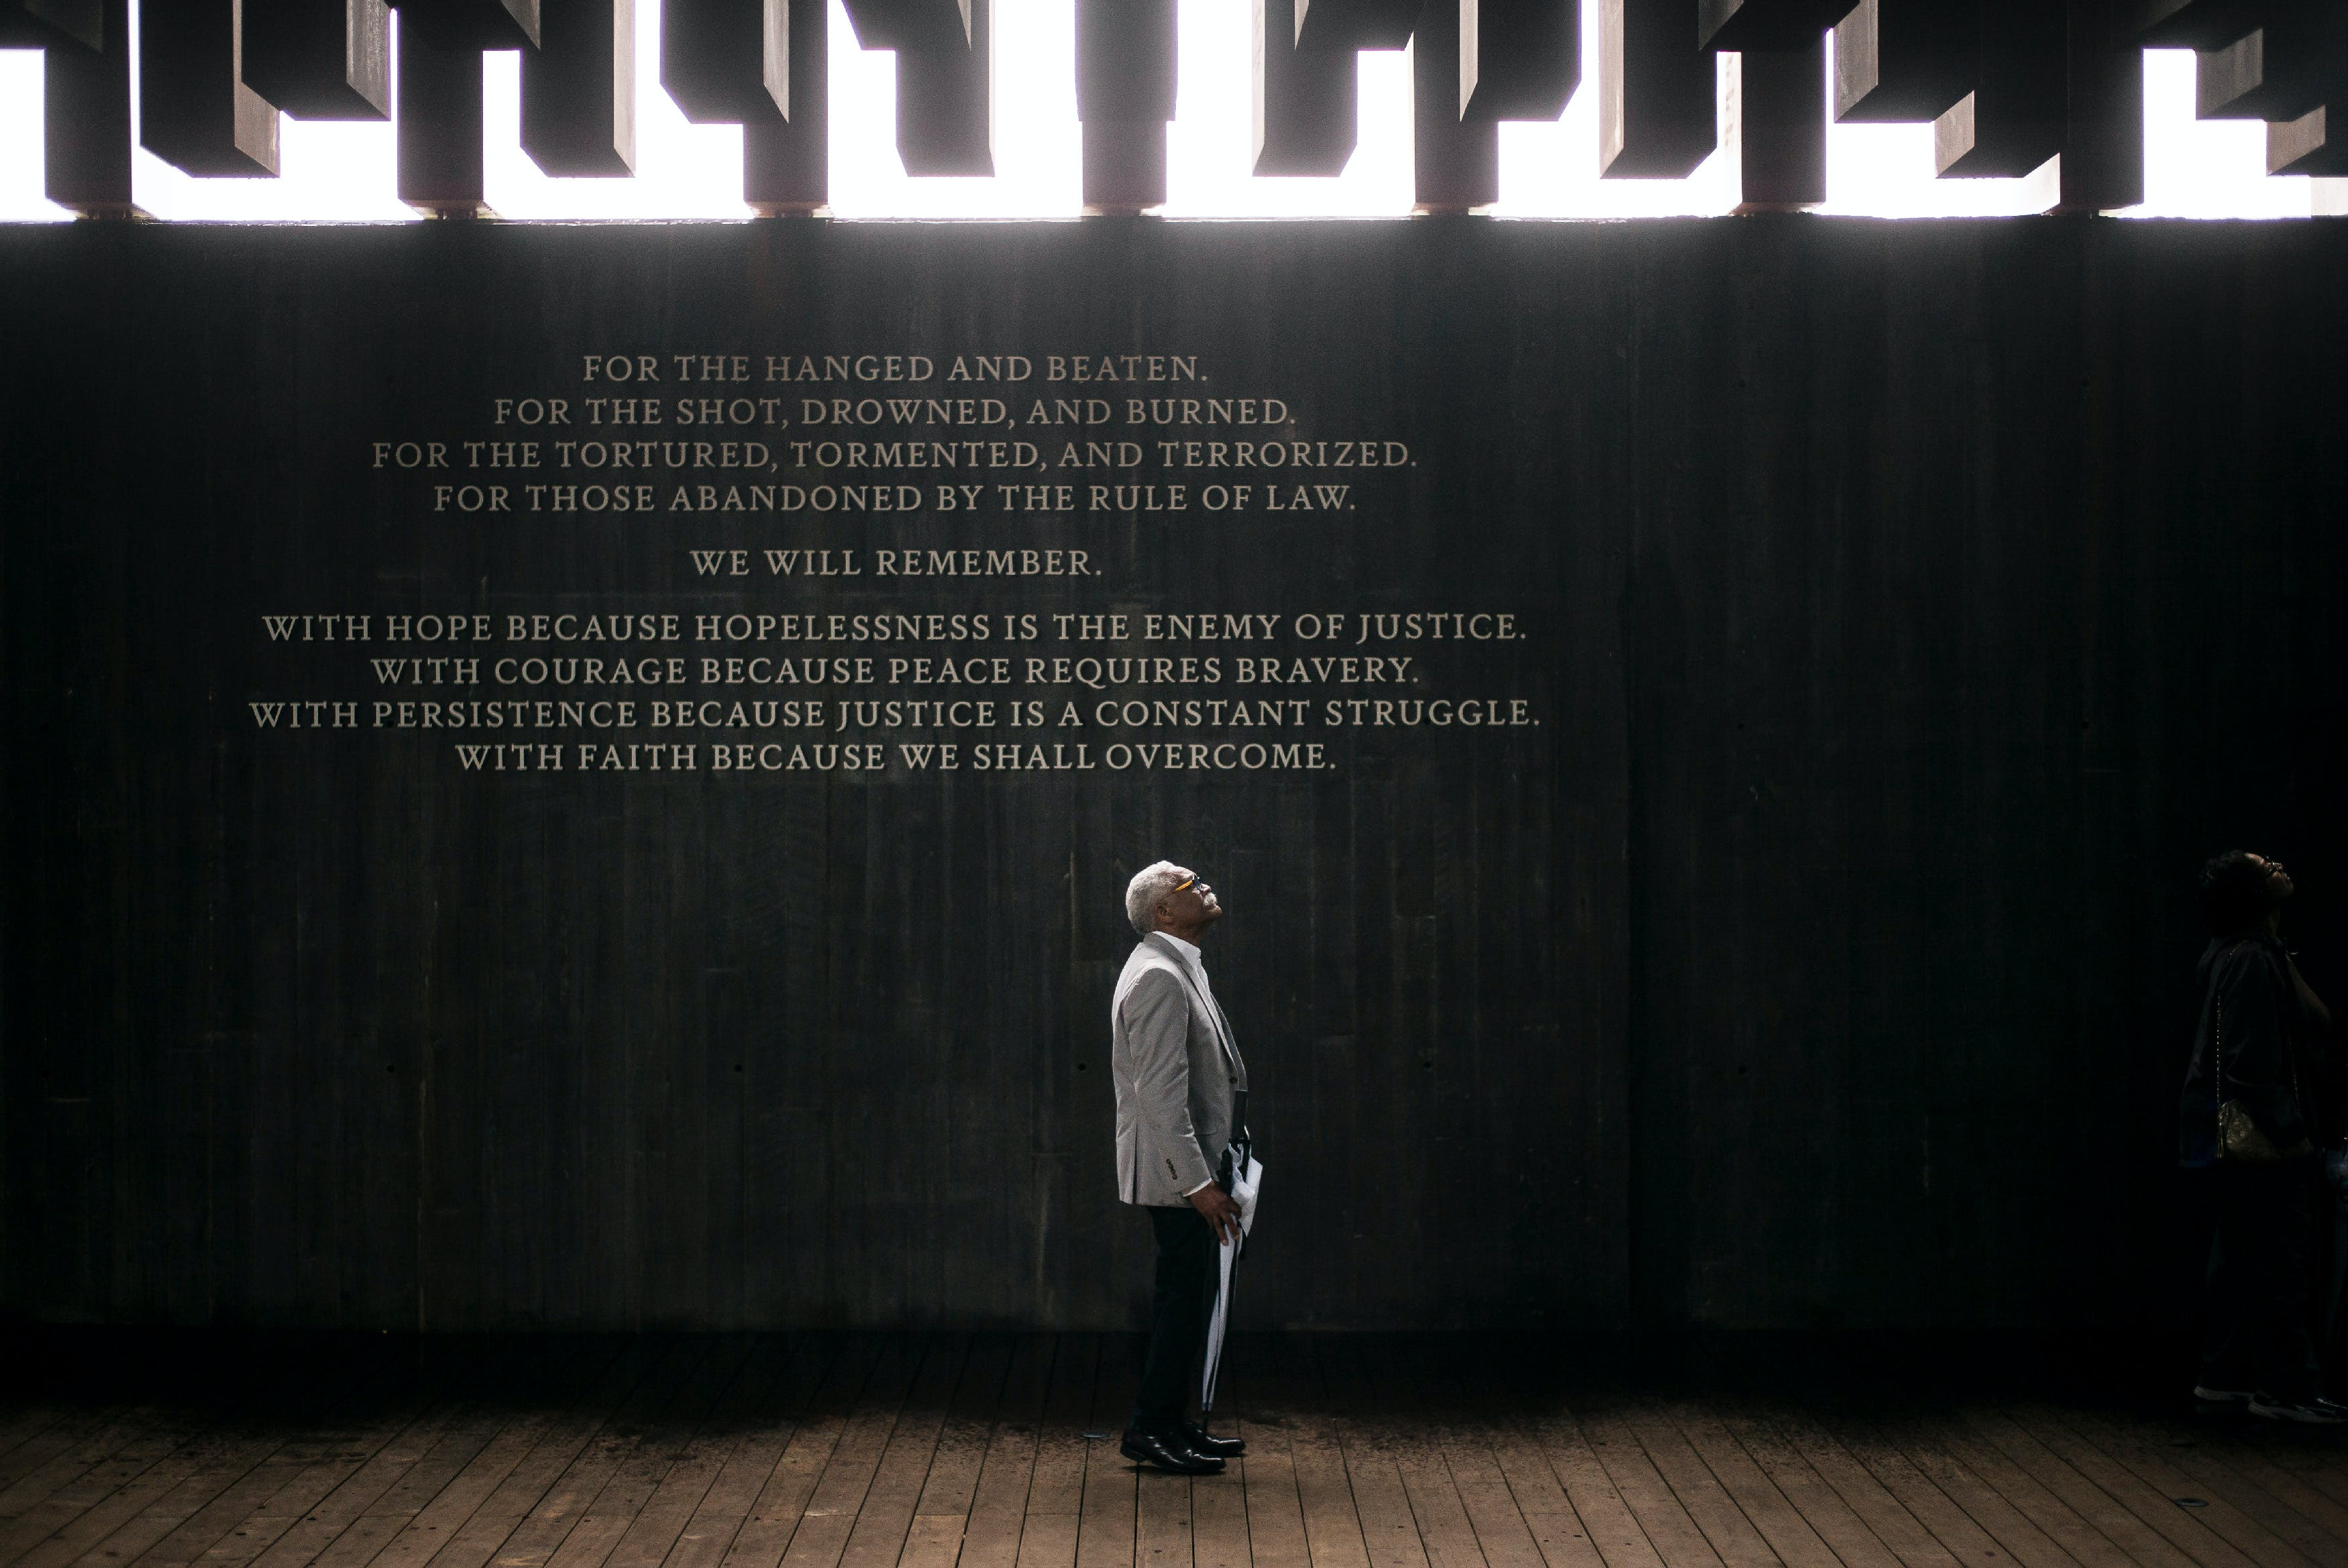 "MONTGOMERY, AL - APRIL 26: Ed Sykes, 77, visits the National Memorial For Peace And Justice on April 26, 2018 in Montgomery, Alabama. Sykes, who has family in Mississippi, was distraught when he discovered his last name in the memorial, three months after finding it on separate memorial in Clay County, Mississippi. ""This is the second time I've seen the name Sykes as a hanging victim. What can I say?"" Sykes, who now lives in San Francisco, plans to investigate the lynching of a possible relative at the Equal Justice Initiative headquarters in Montgomery before returning to California. The memorial is dedicated to the legacy of enslaved black people and those terrorized by lynching and Jim Crow segregation in America. Conceived by the Equal Justice Initiative, the physical environment is intended to foster reflection on America's history of racial inequality. (Photo by Bob Miller/Getty Images)"